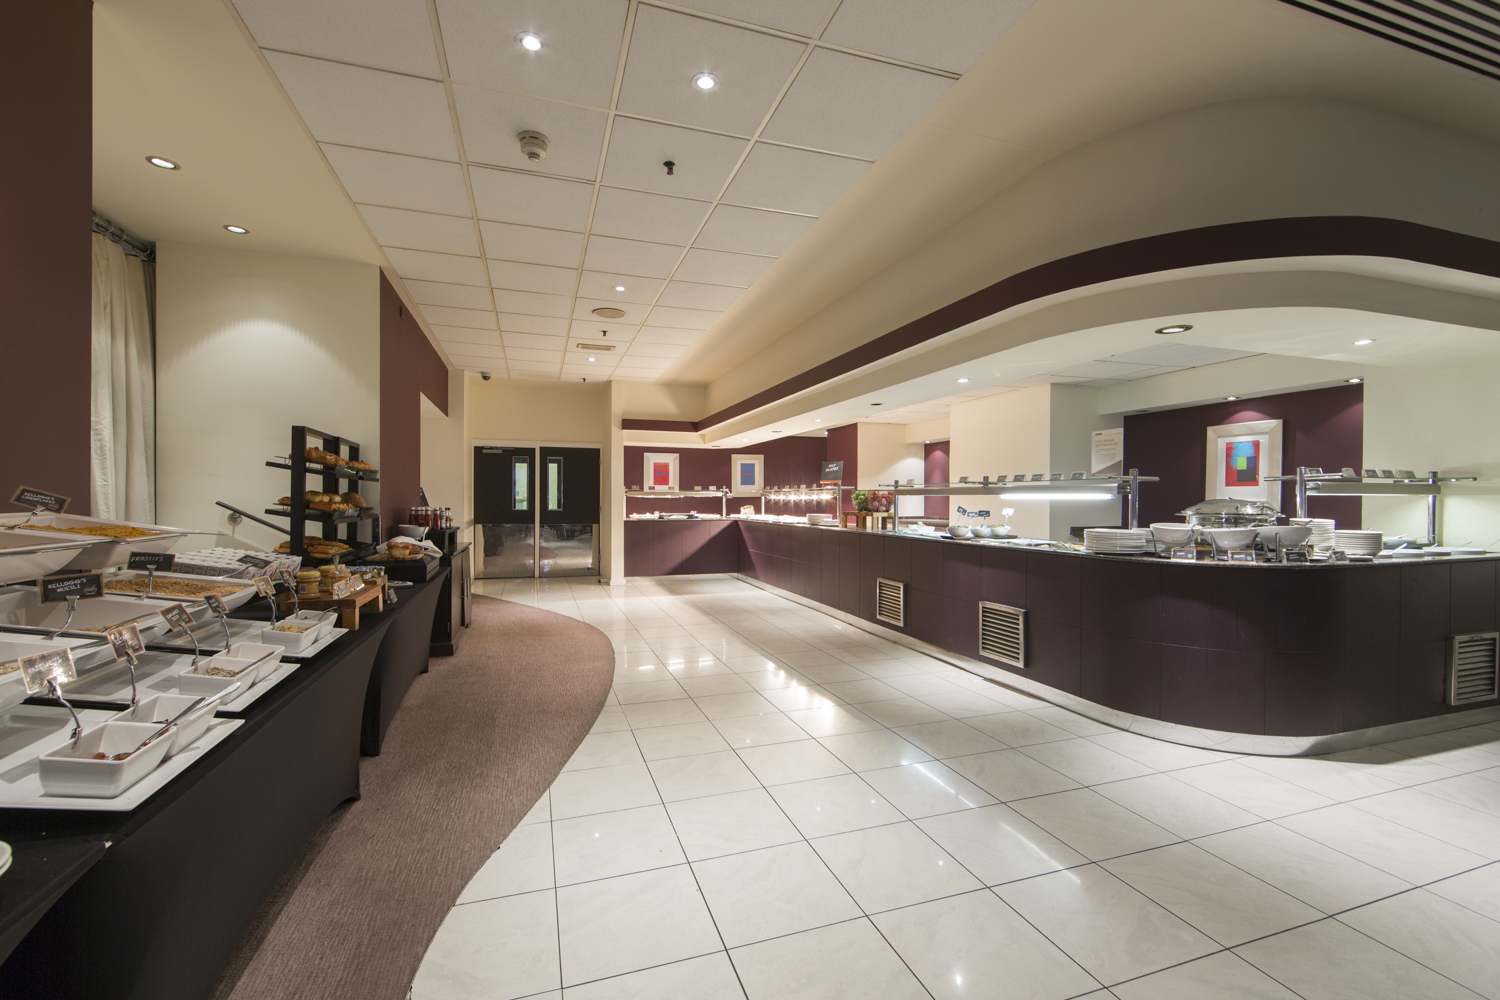 https://www.hotelsbyday.com/_data/default-hotel_image/0/4526/breakfast-buffet.jpg